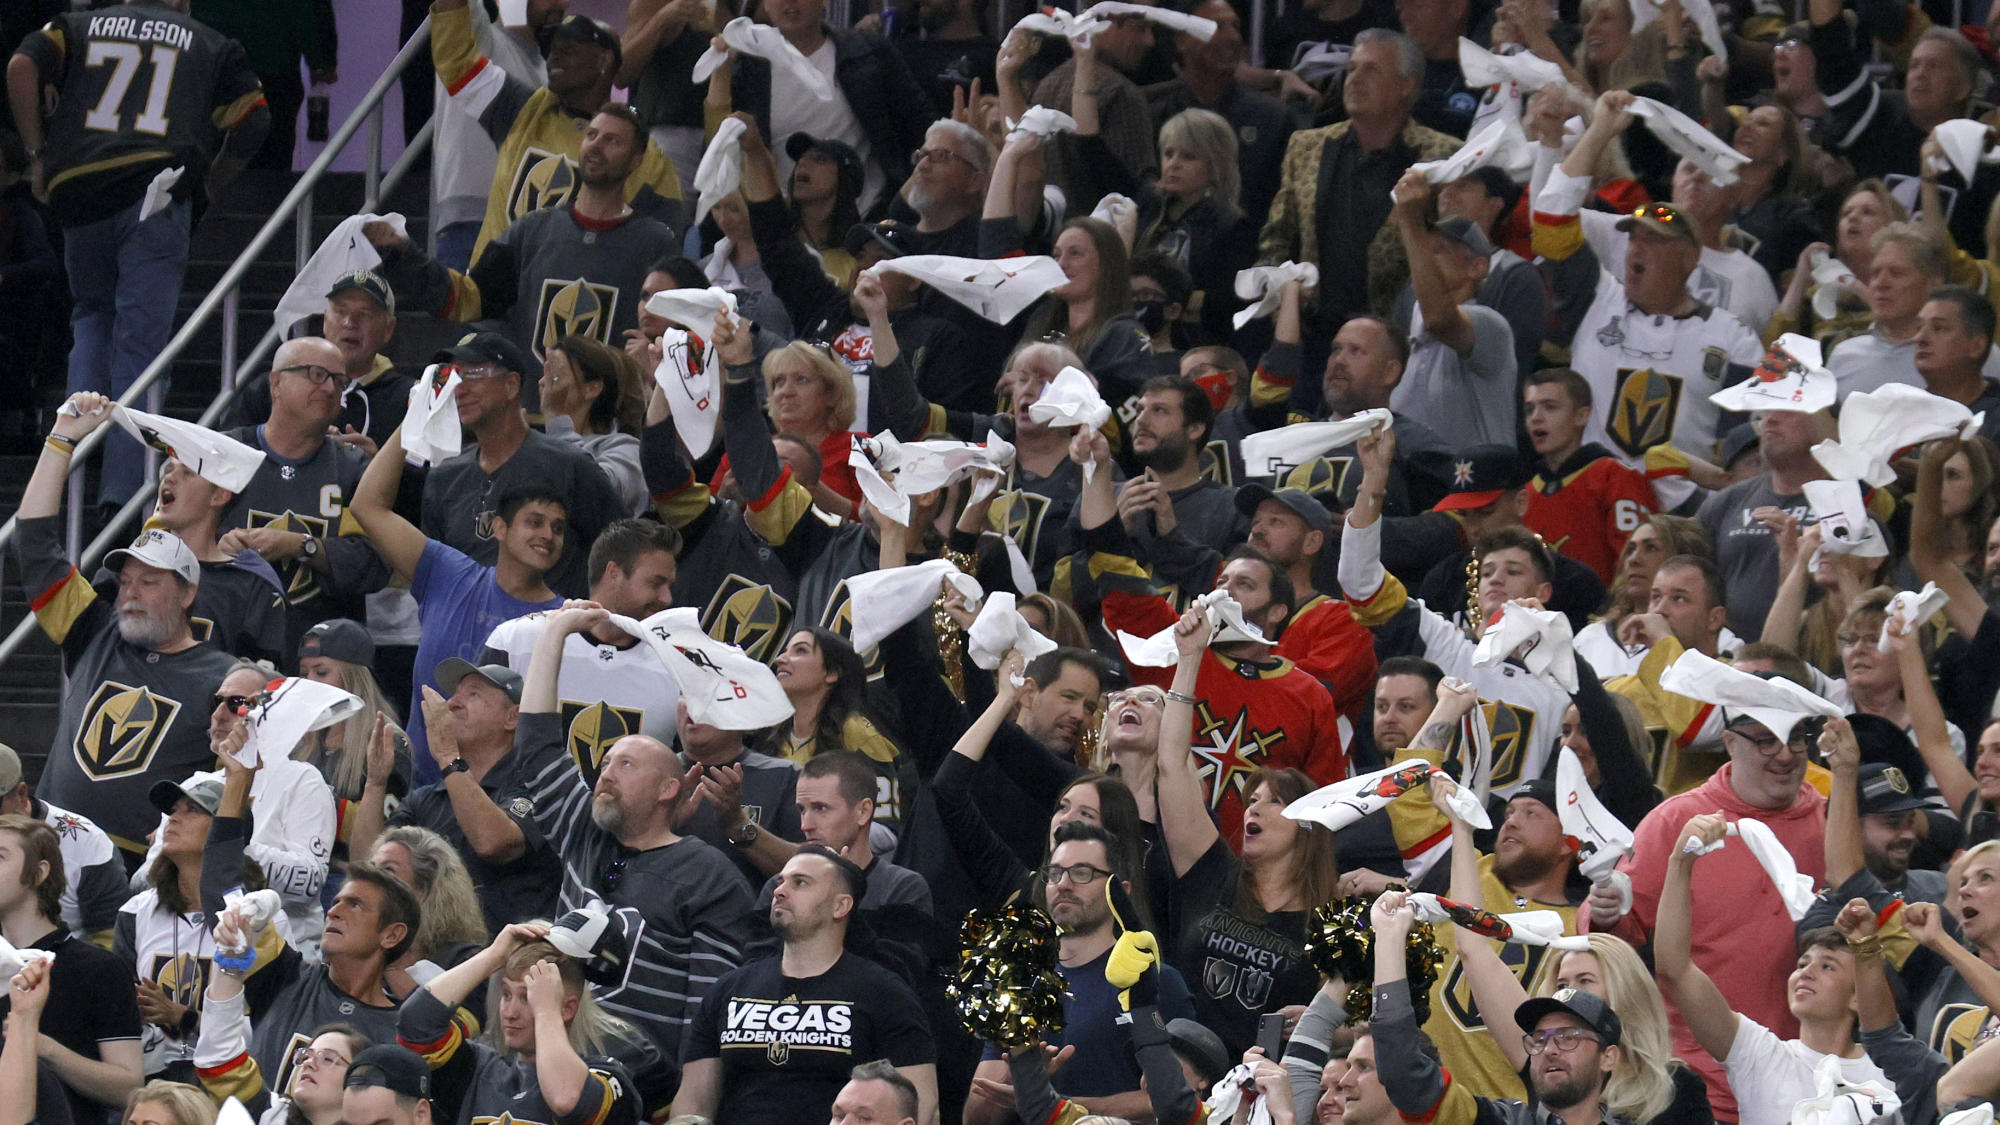 Golden Knights fan steals Avalanche fan's flag, starts fight at end of Game 6